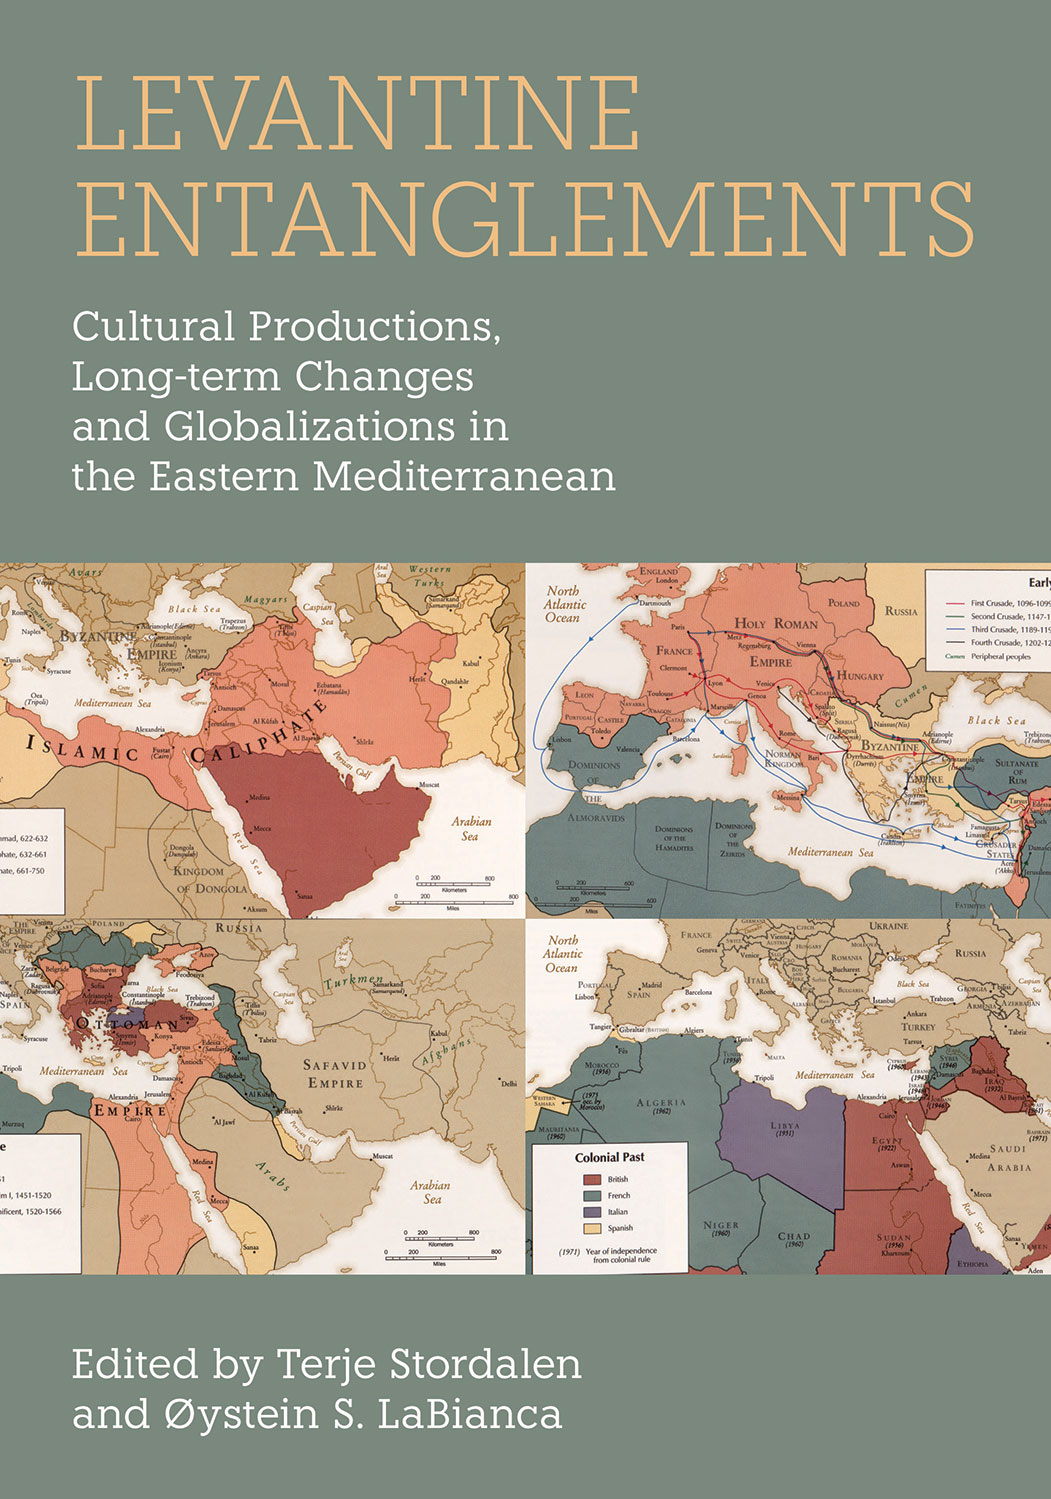 Levantine Entanglements - Cultural Productions, Long-term Changes and Globalizations in the Eastern Mediterranean - Terje Stordalen